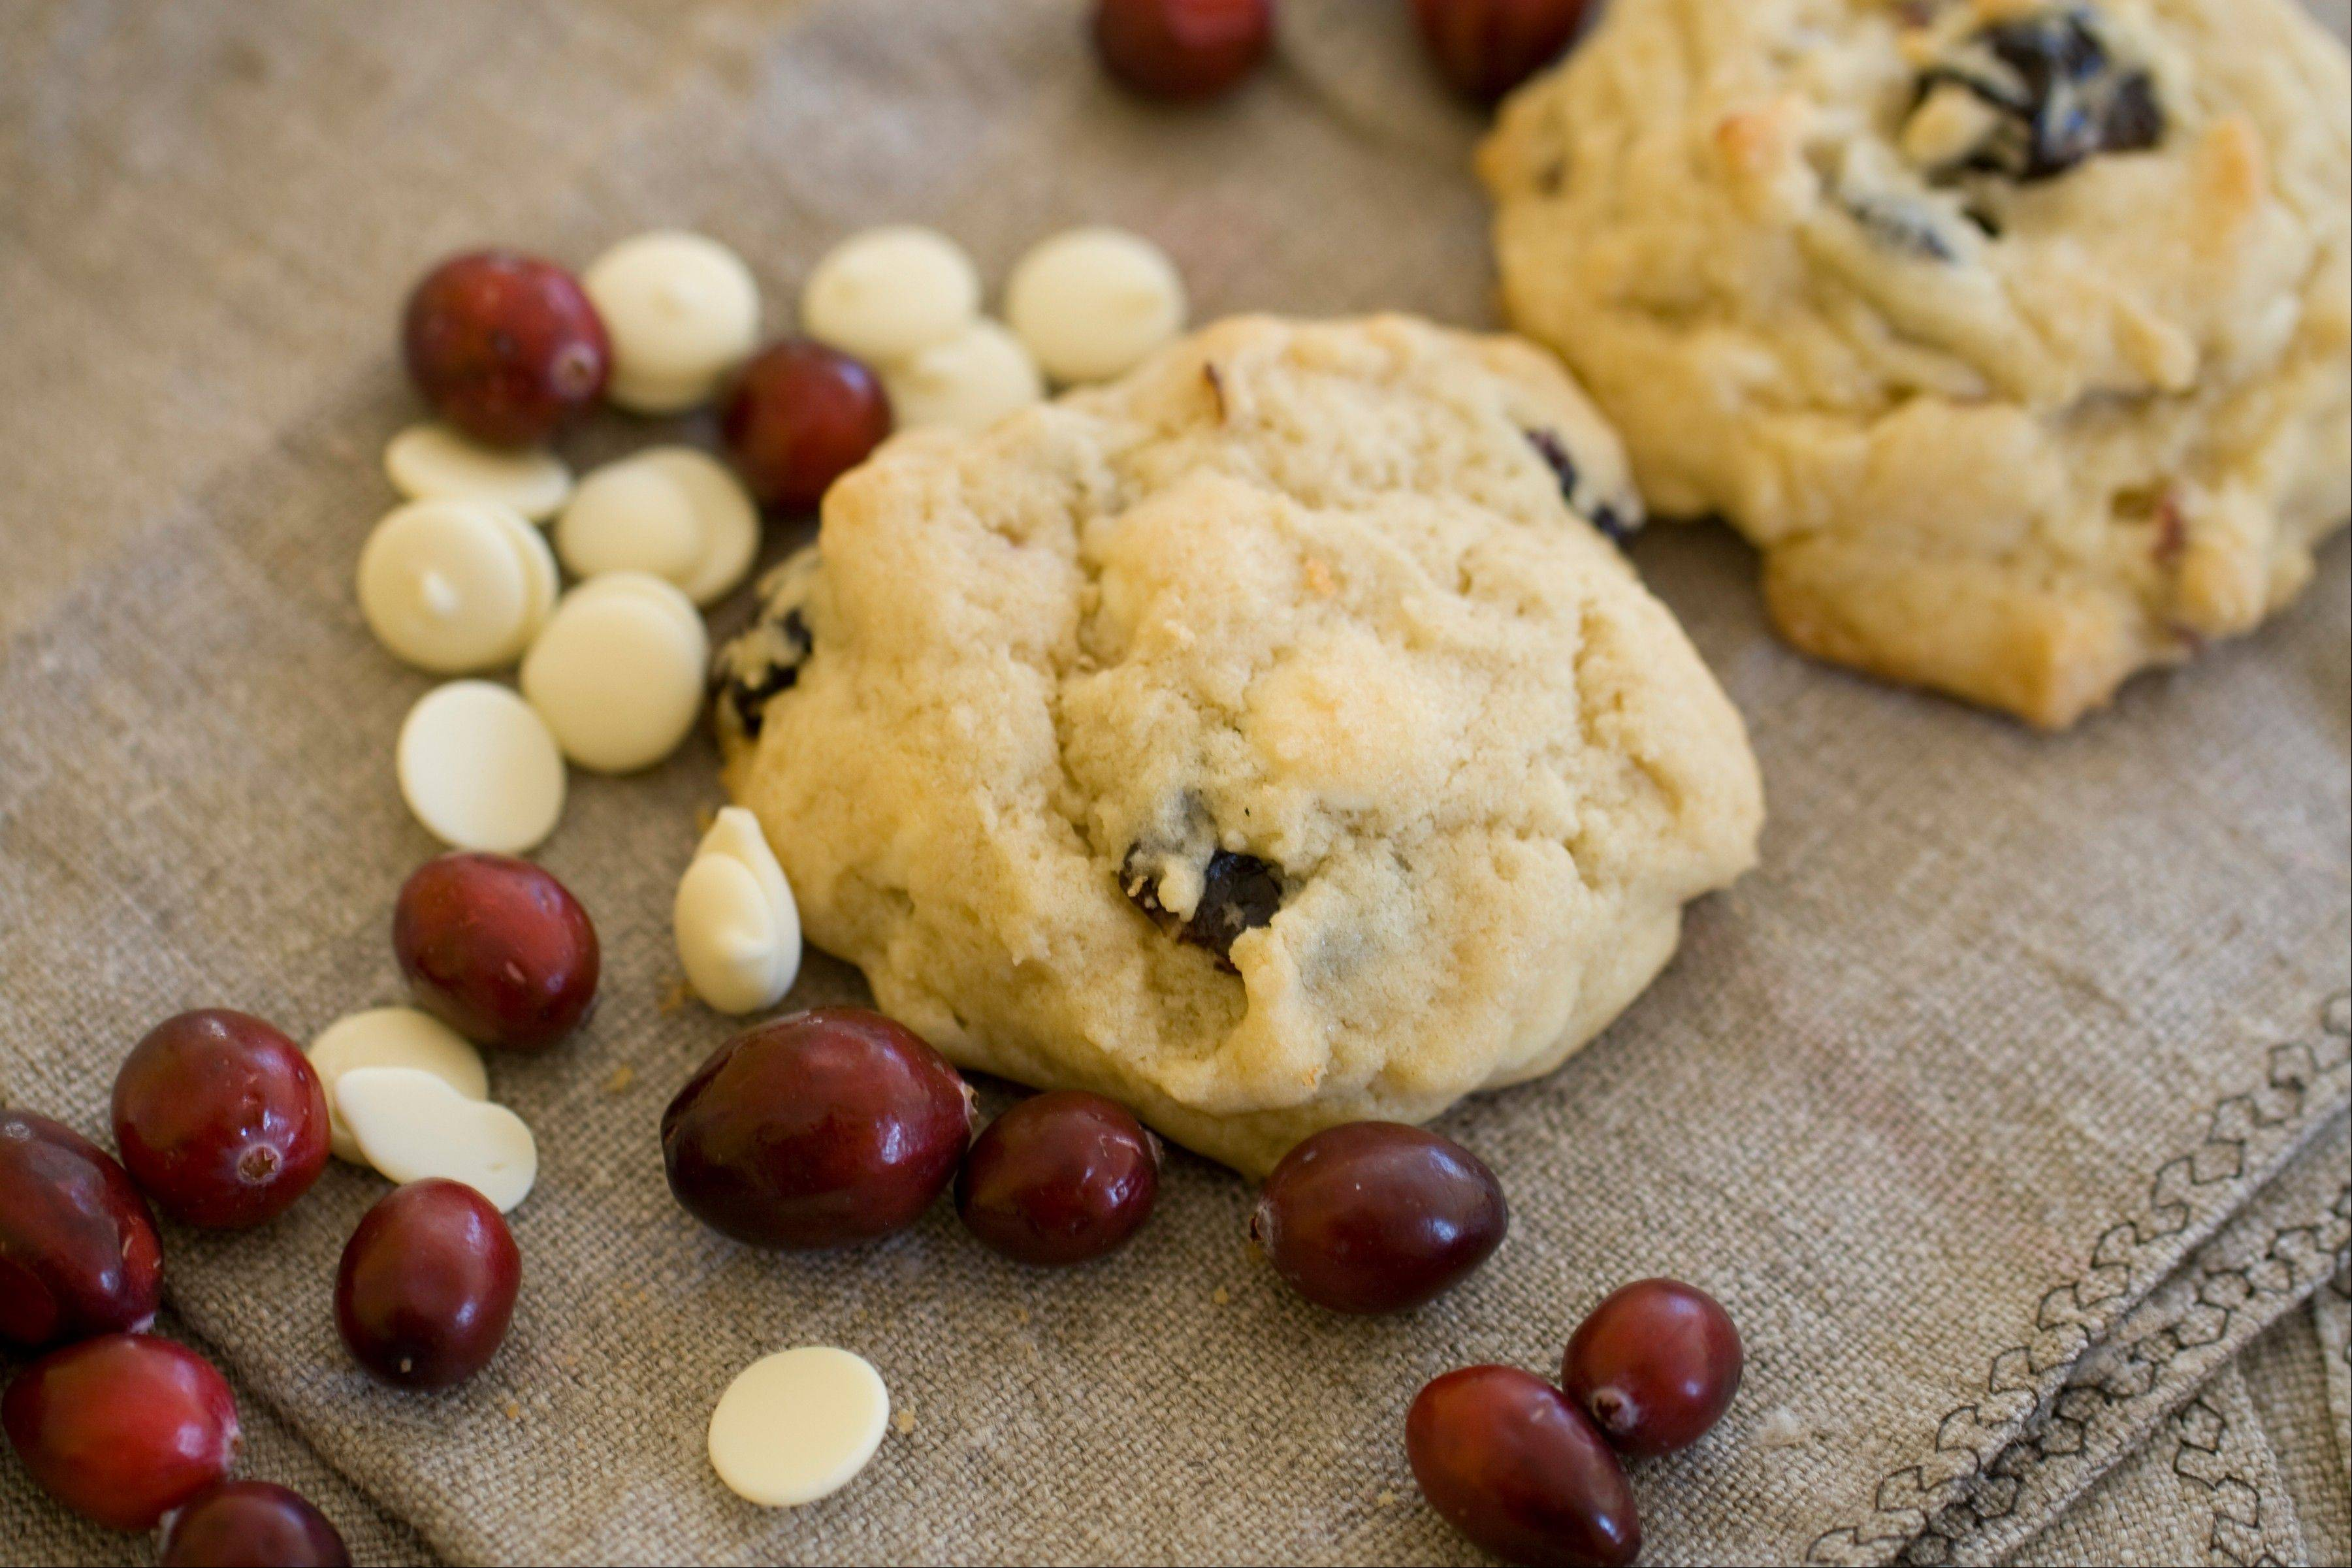 Cherry White Chocolate Drop Cookies take so little time even those who don't like to bake won't mind baking.